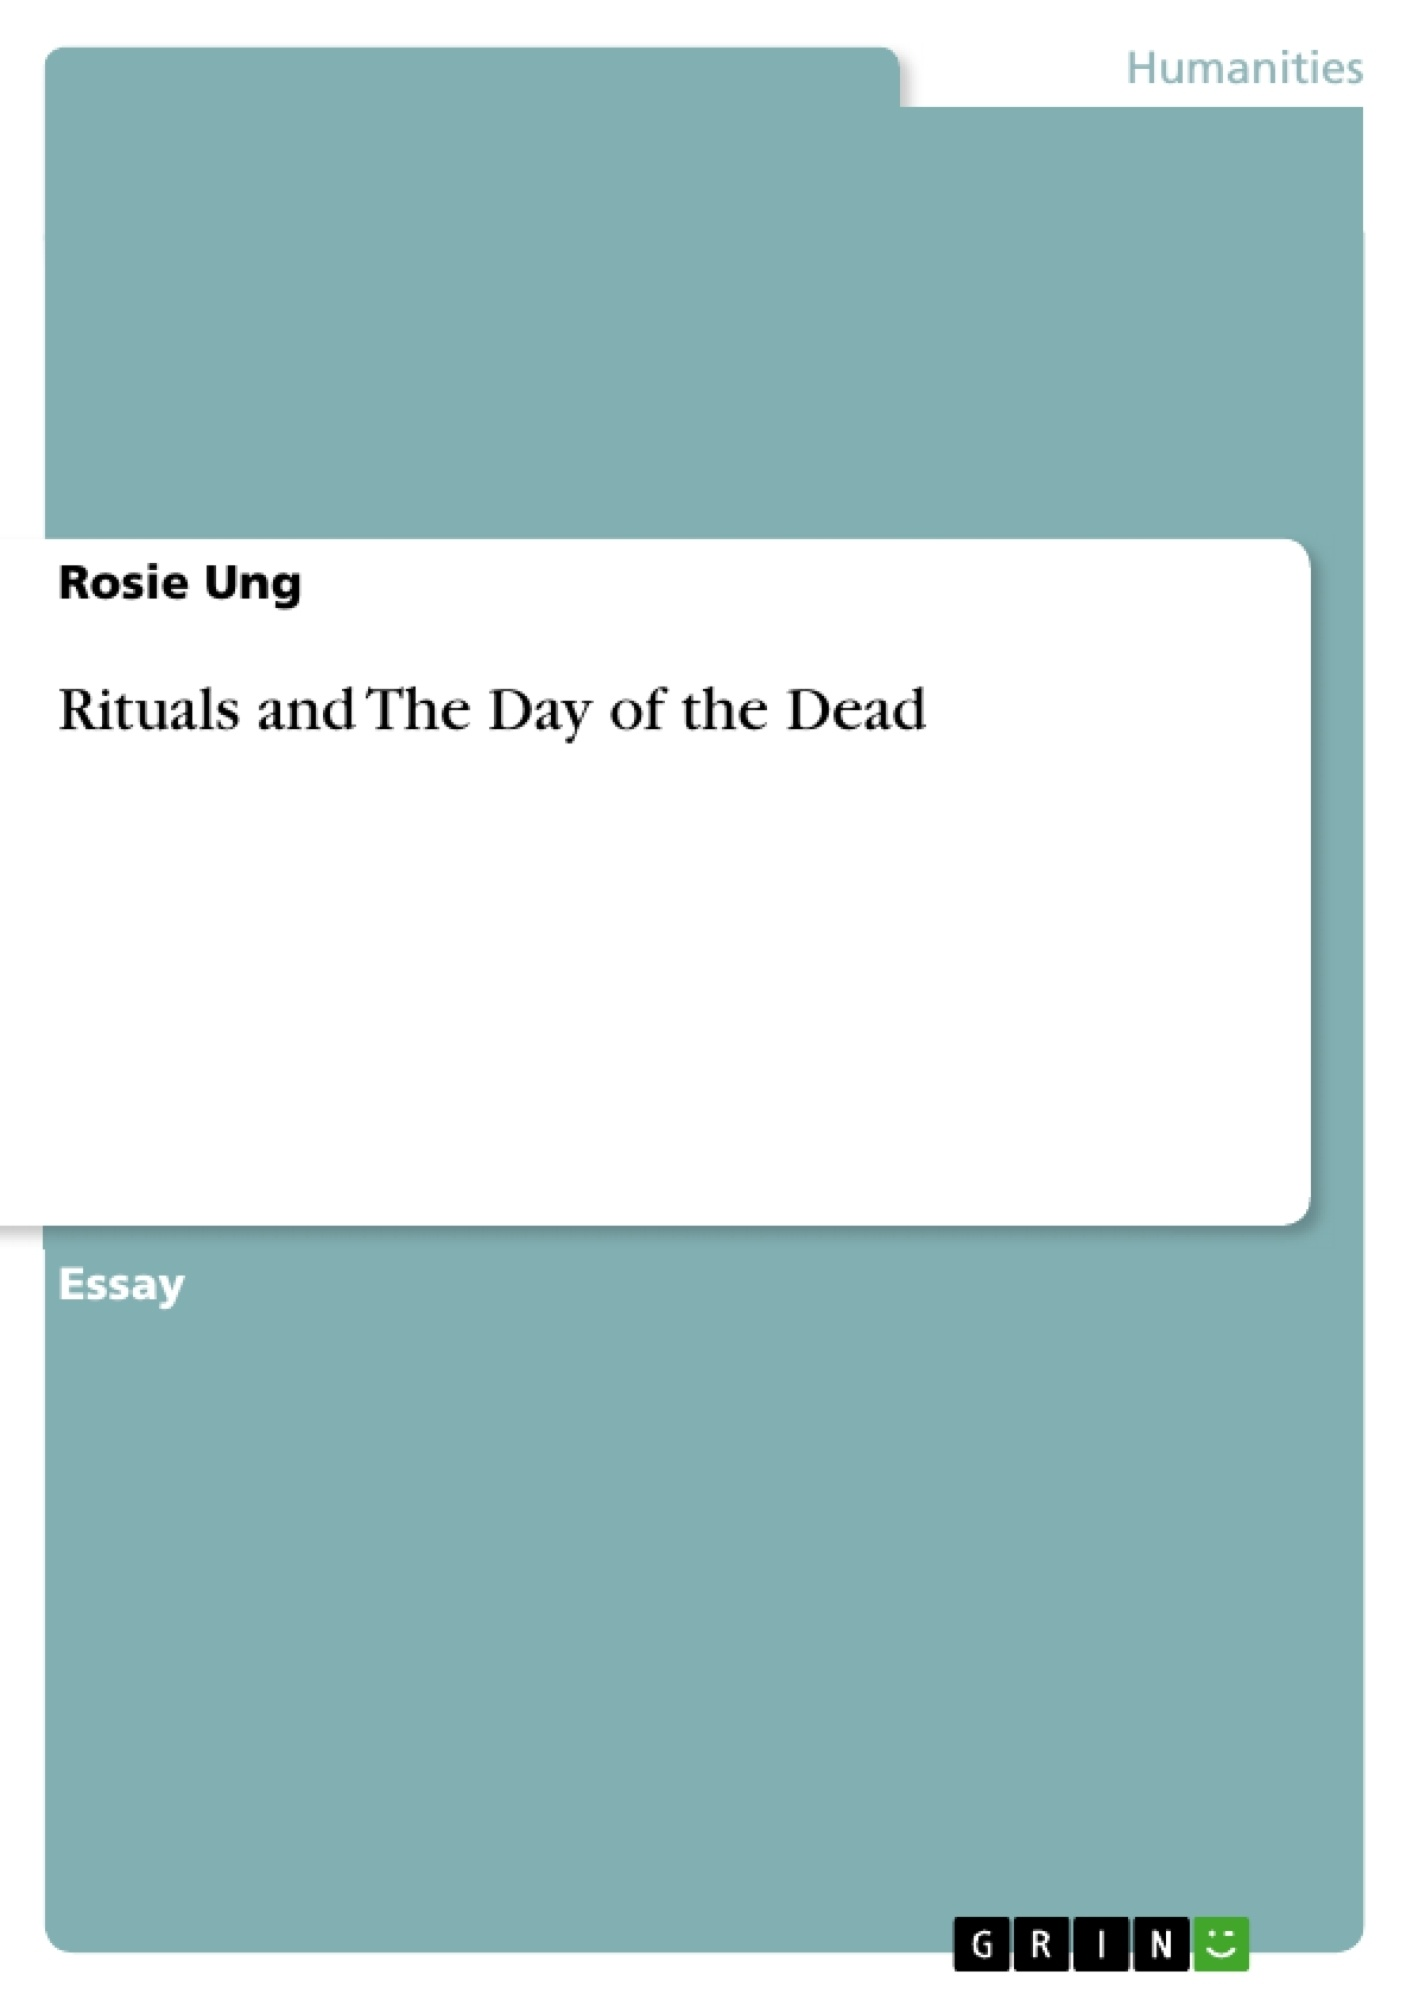 Title: Rituals and The Day of the Dead